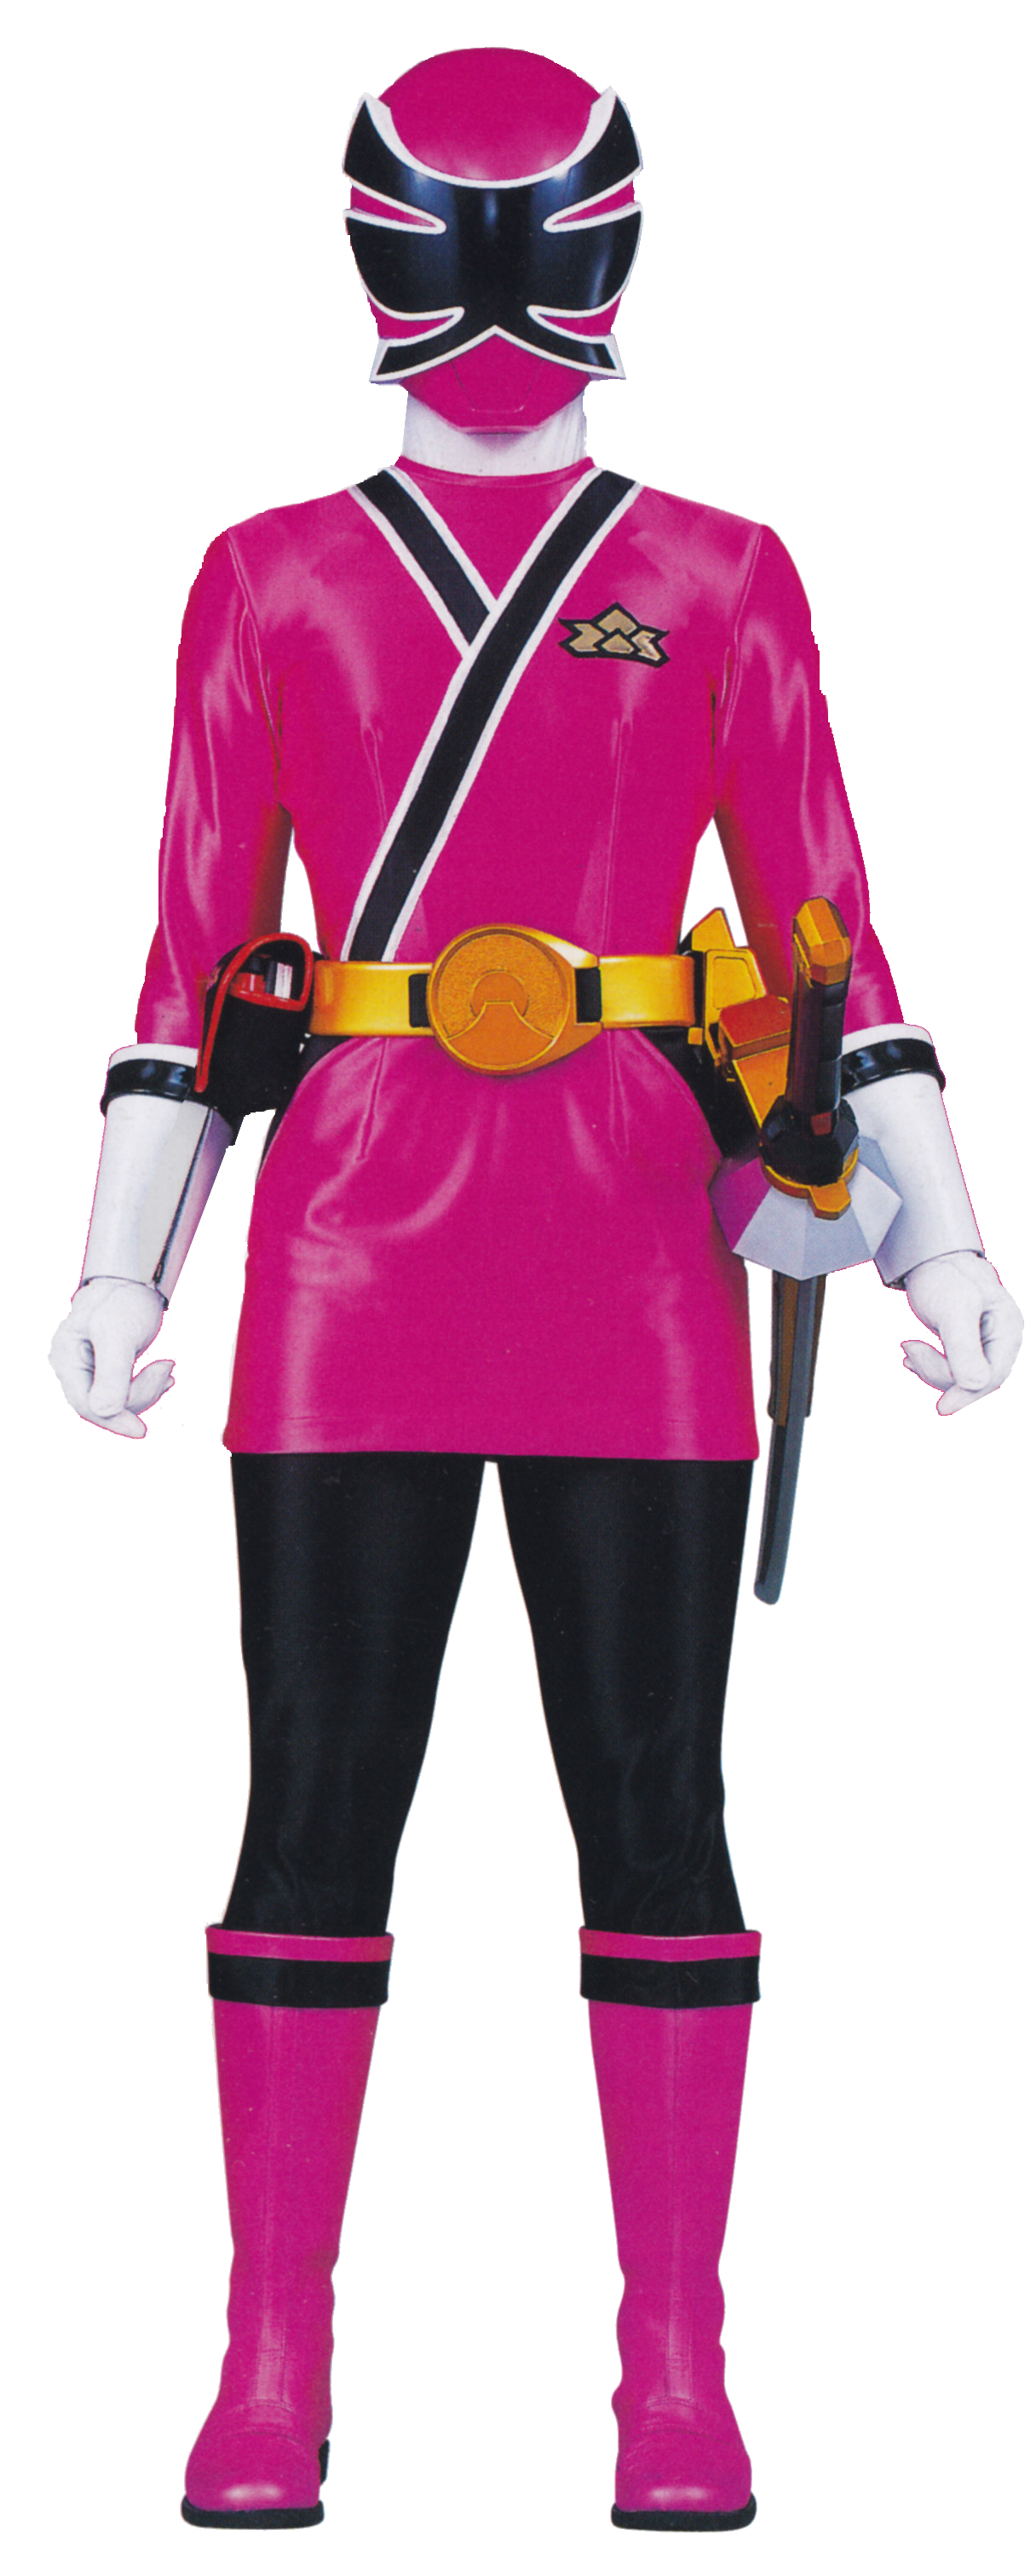 Shinken pink power rangers samurai samurai warriors defeated them with power symbols passed down from parent to child buycottarizona